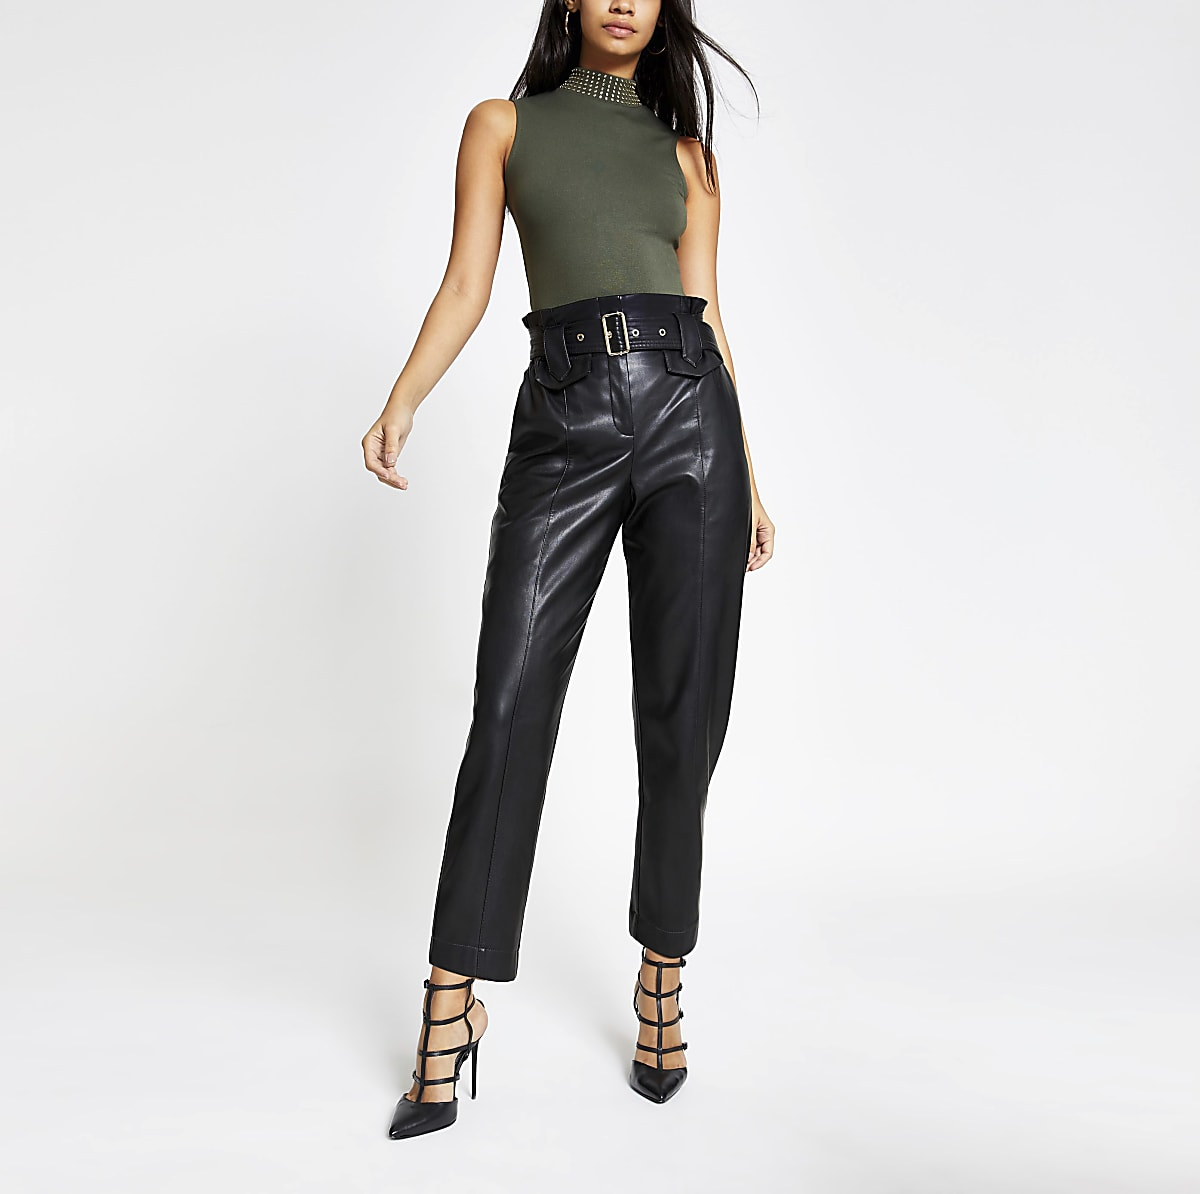 Khaki diamante embellished neck bodysuit